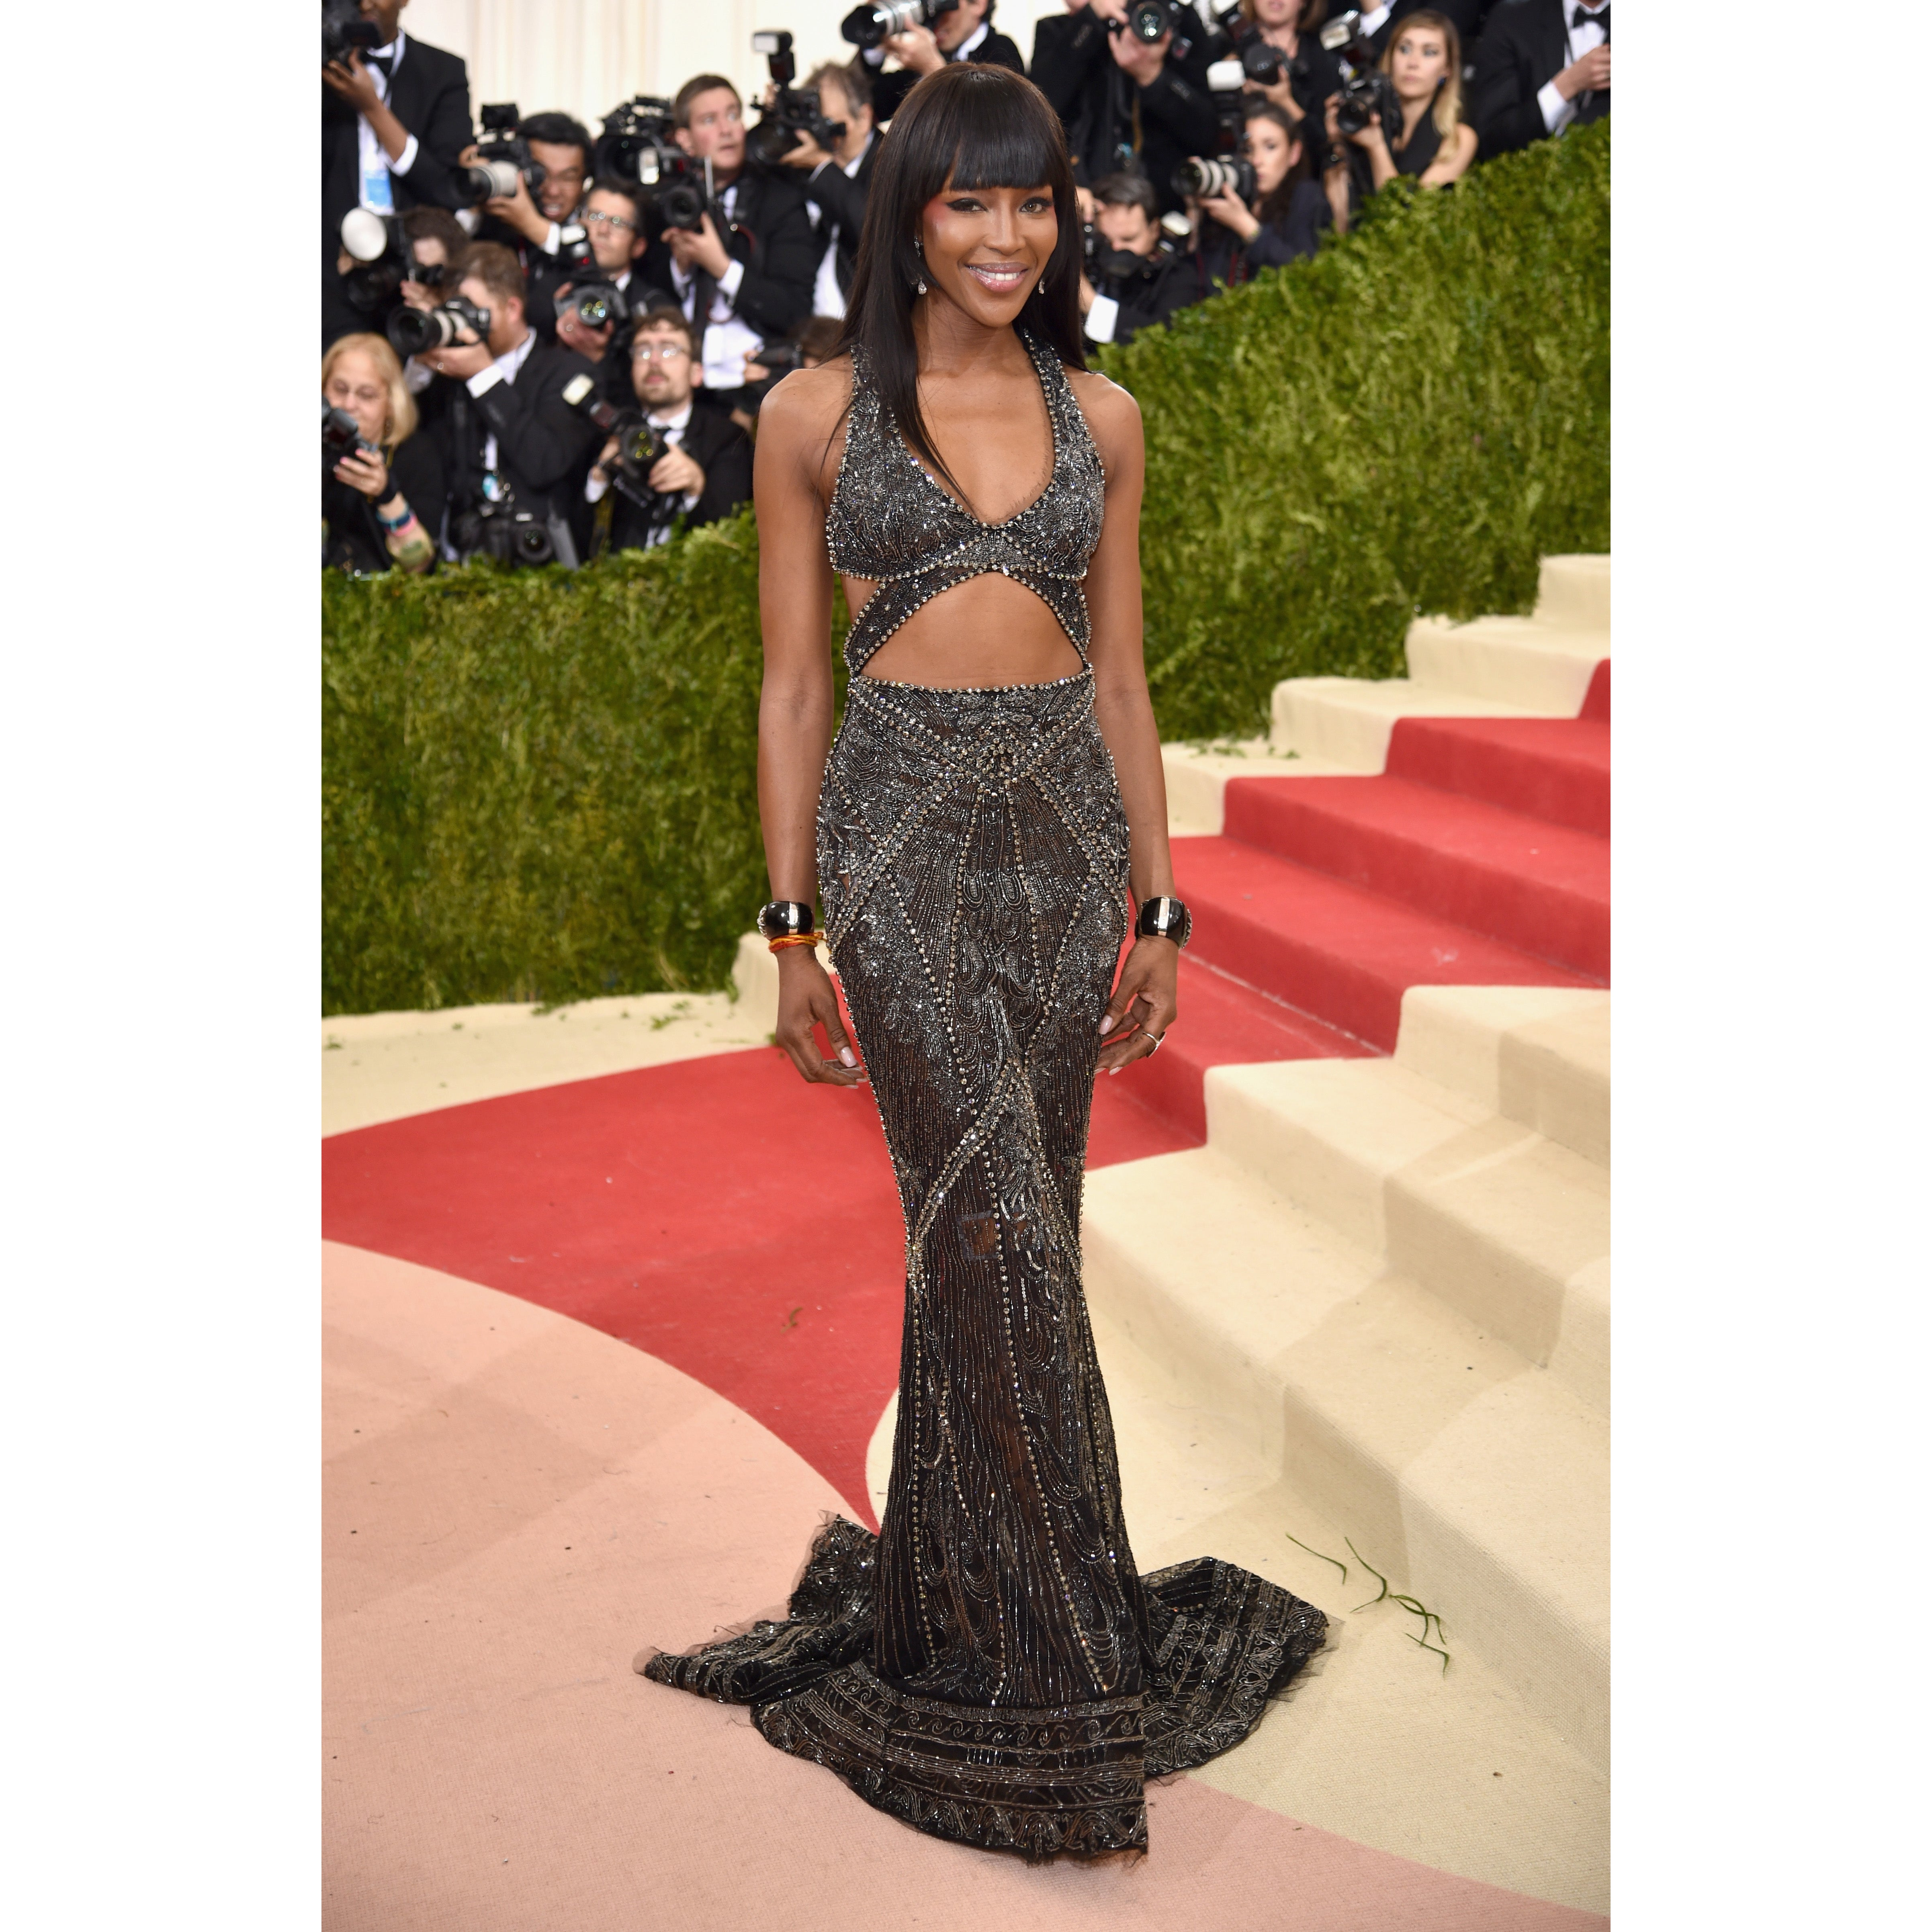 Naomi Campbell Celebrates 30 Years of Dominating the World of Modeling